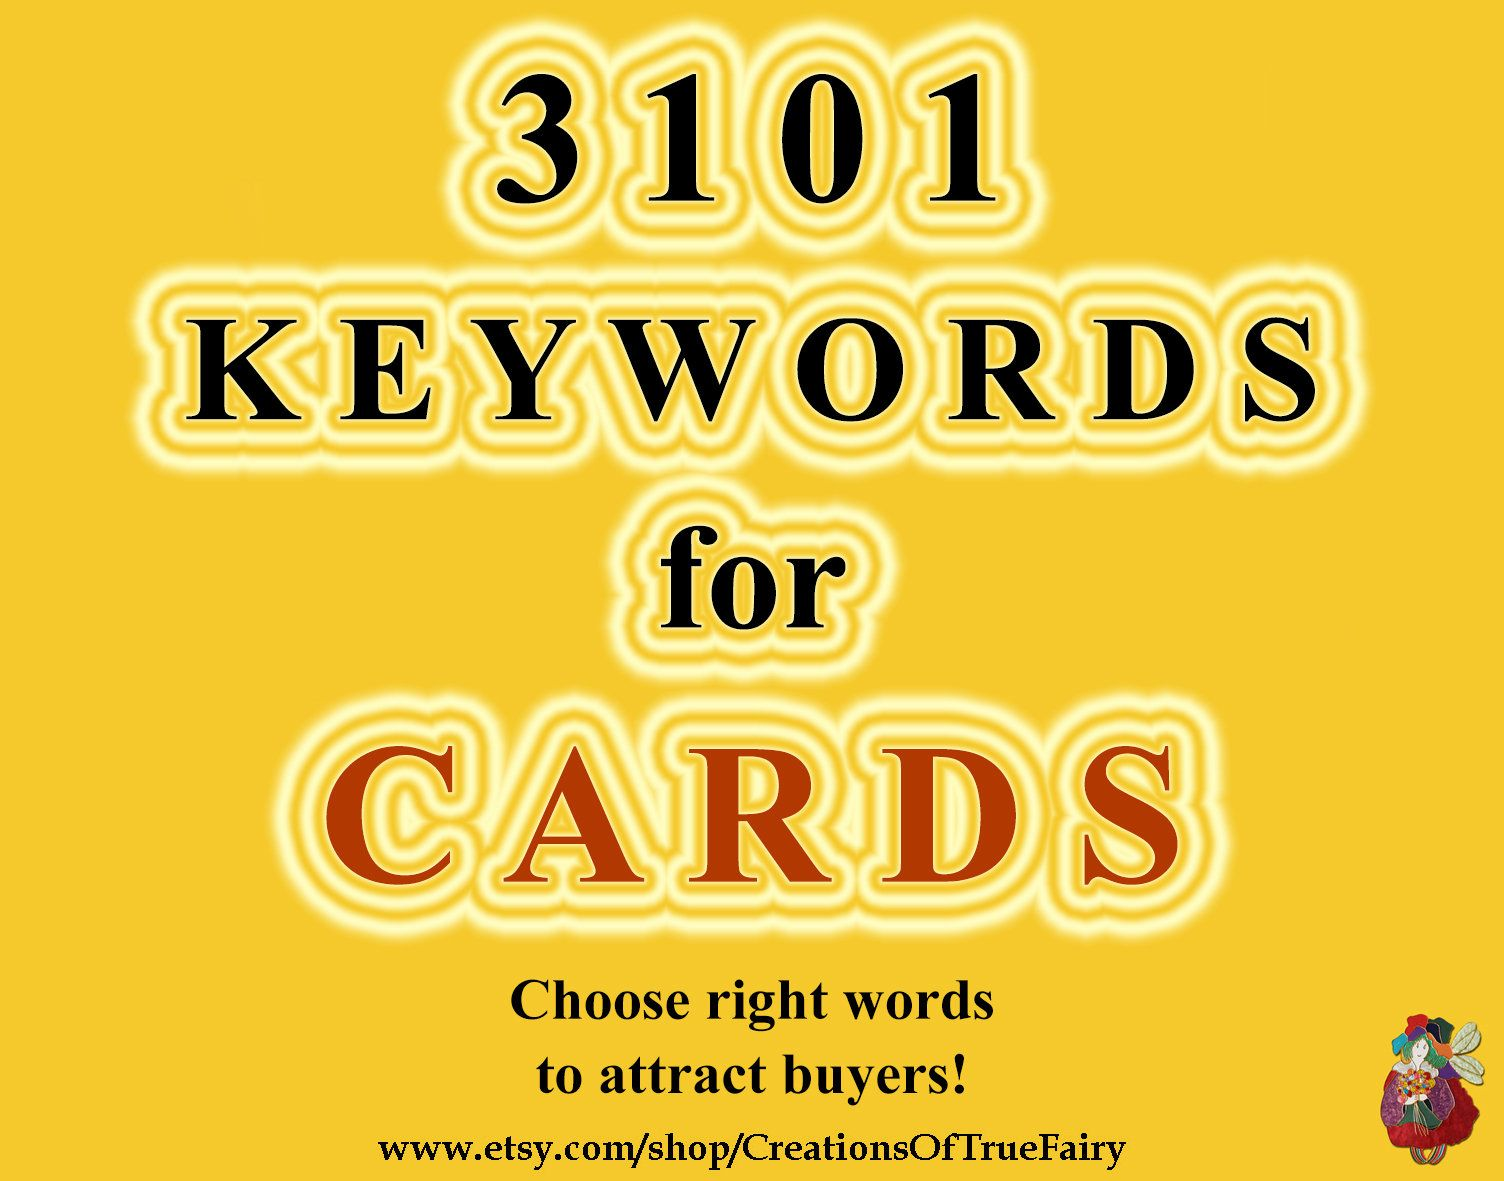 3101 Card Keywords Top Etsy Keywords For Cards Tagging Items Seo